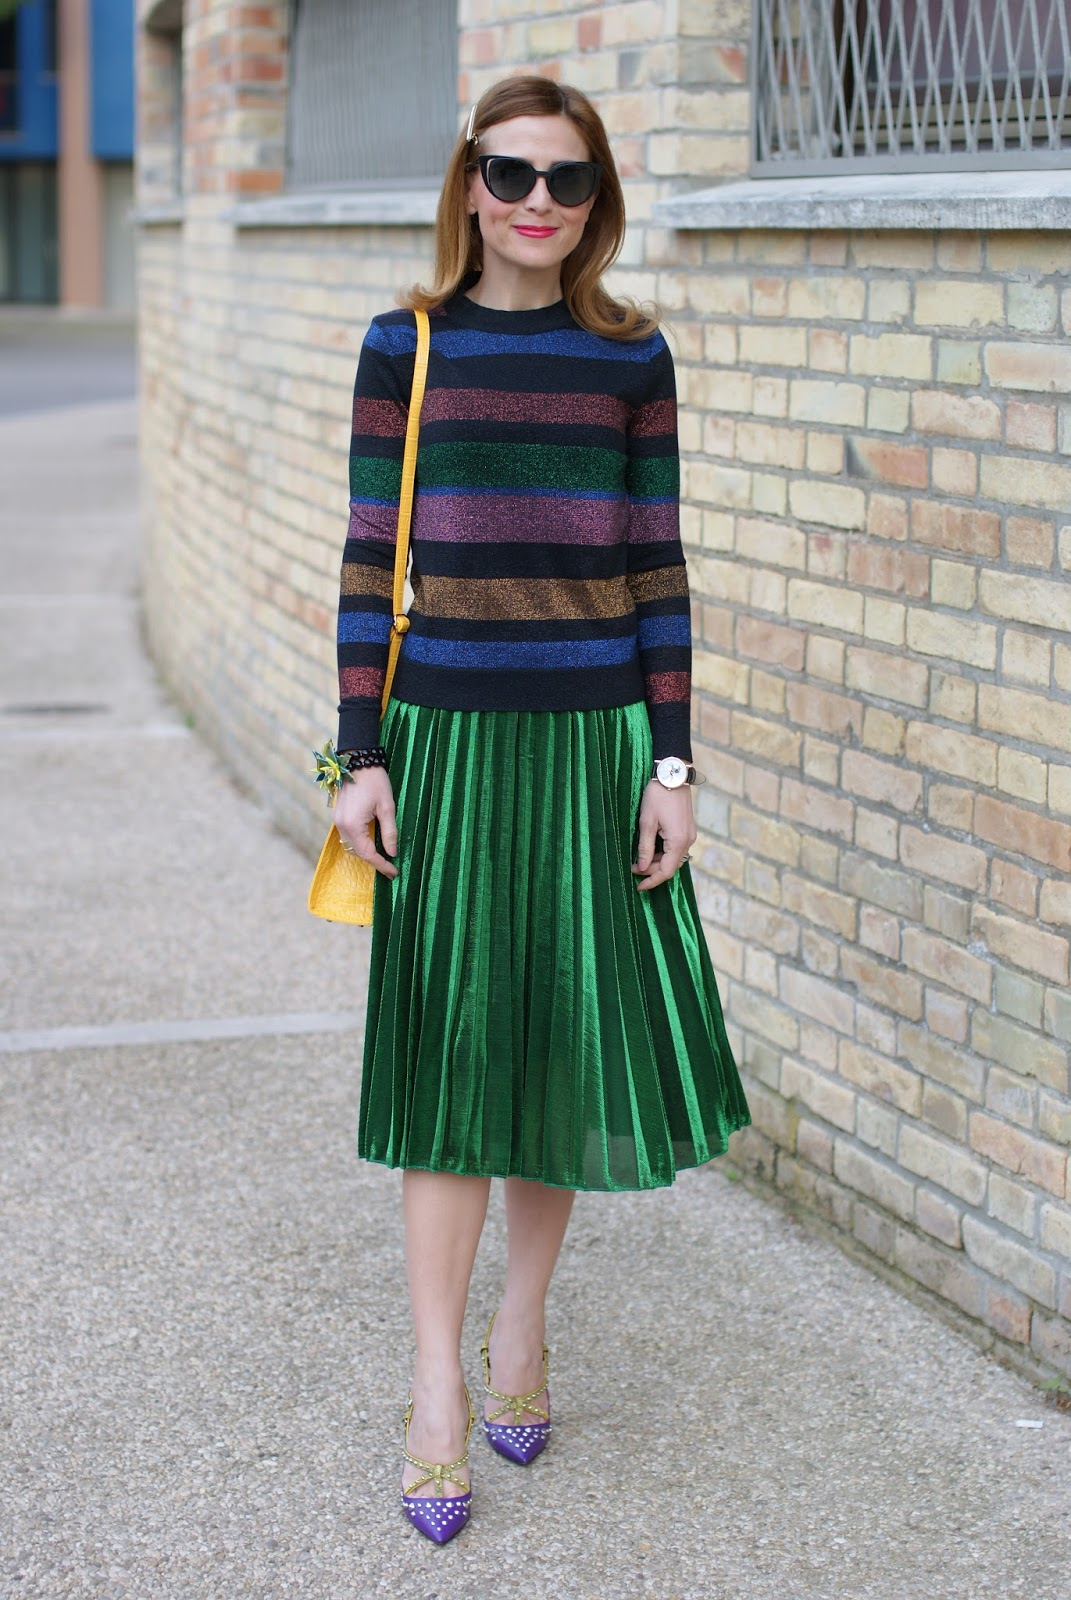 Gucci style green metallic pleated skirt, striped metallic blouse, Cesare Paciotti heels on Fashion and Cookies fashion blog, fashion blogger style